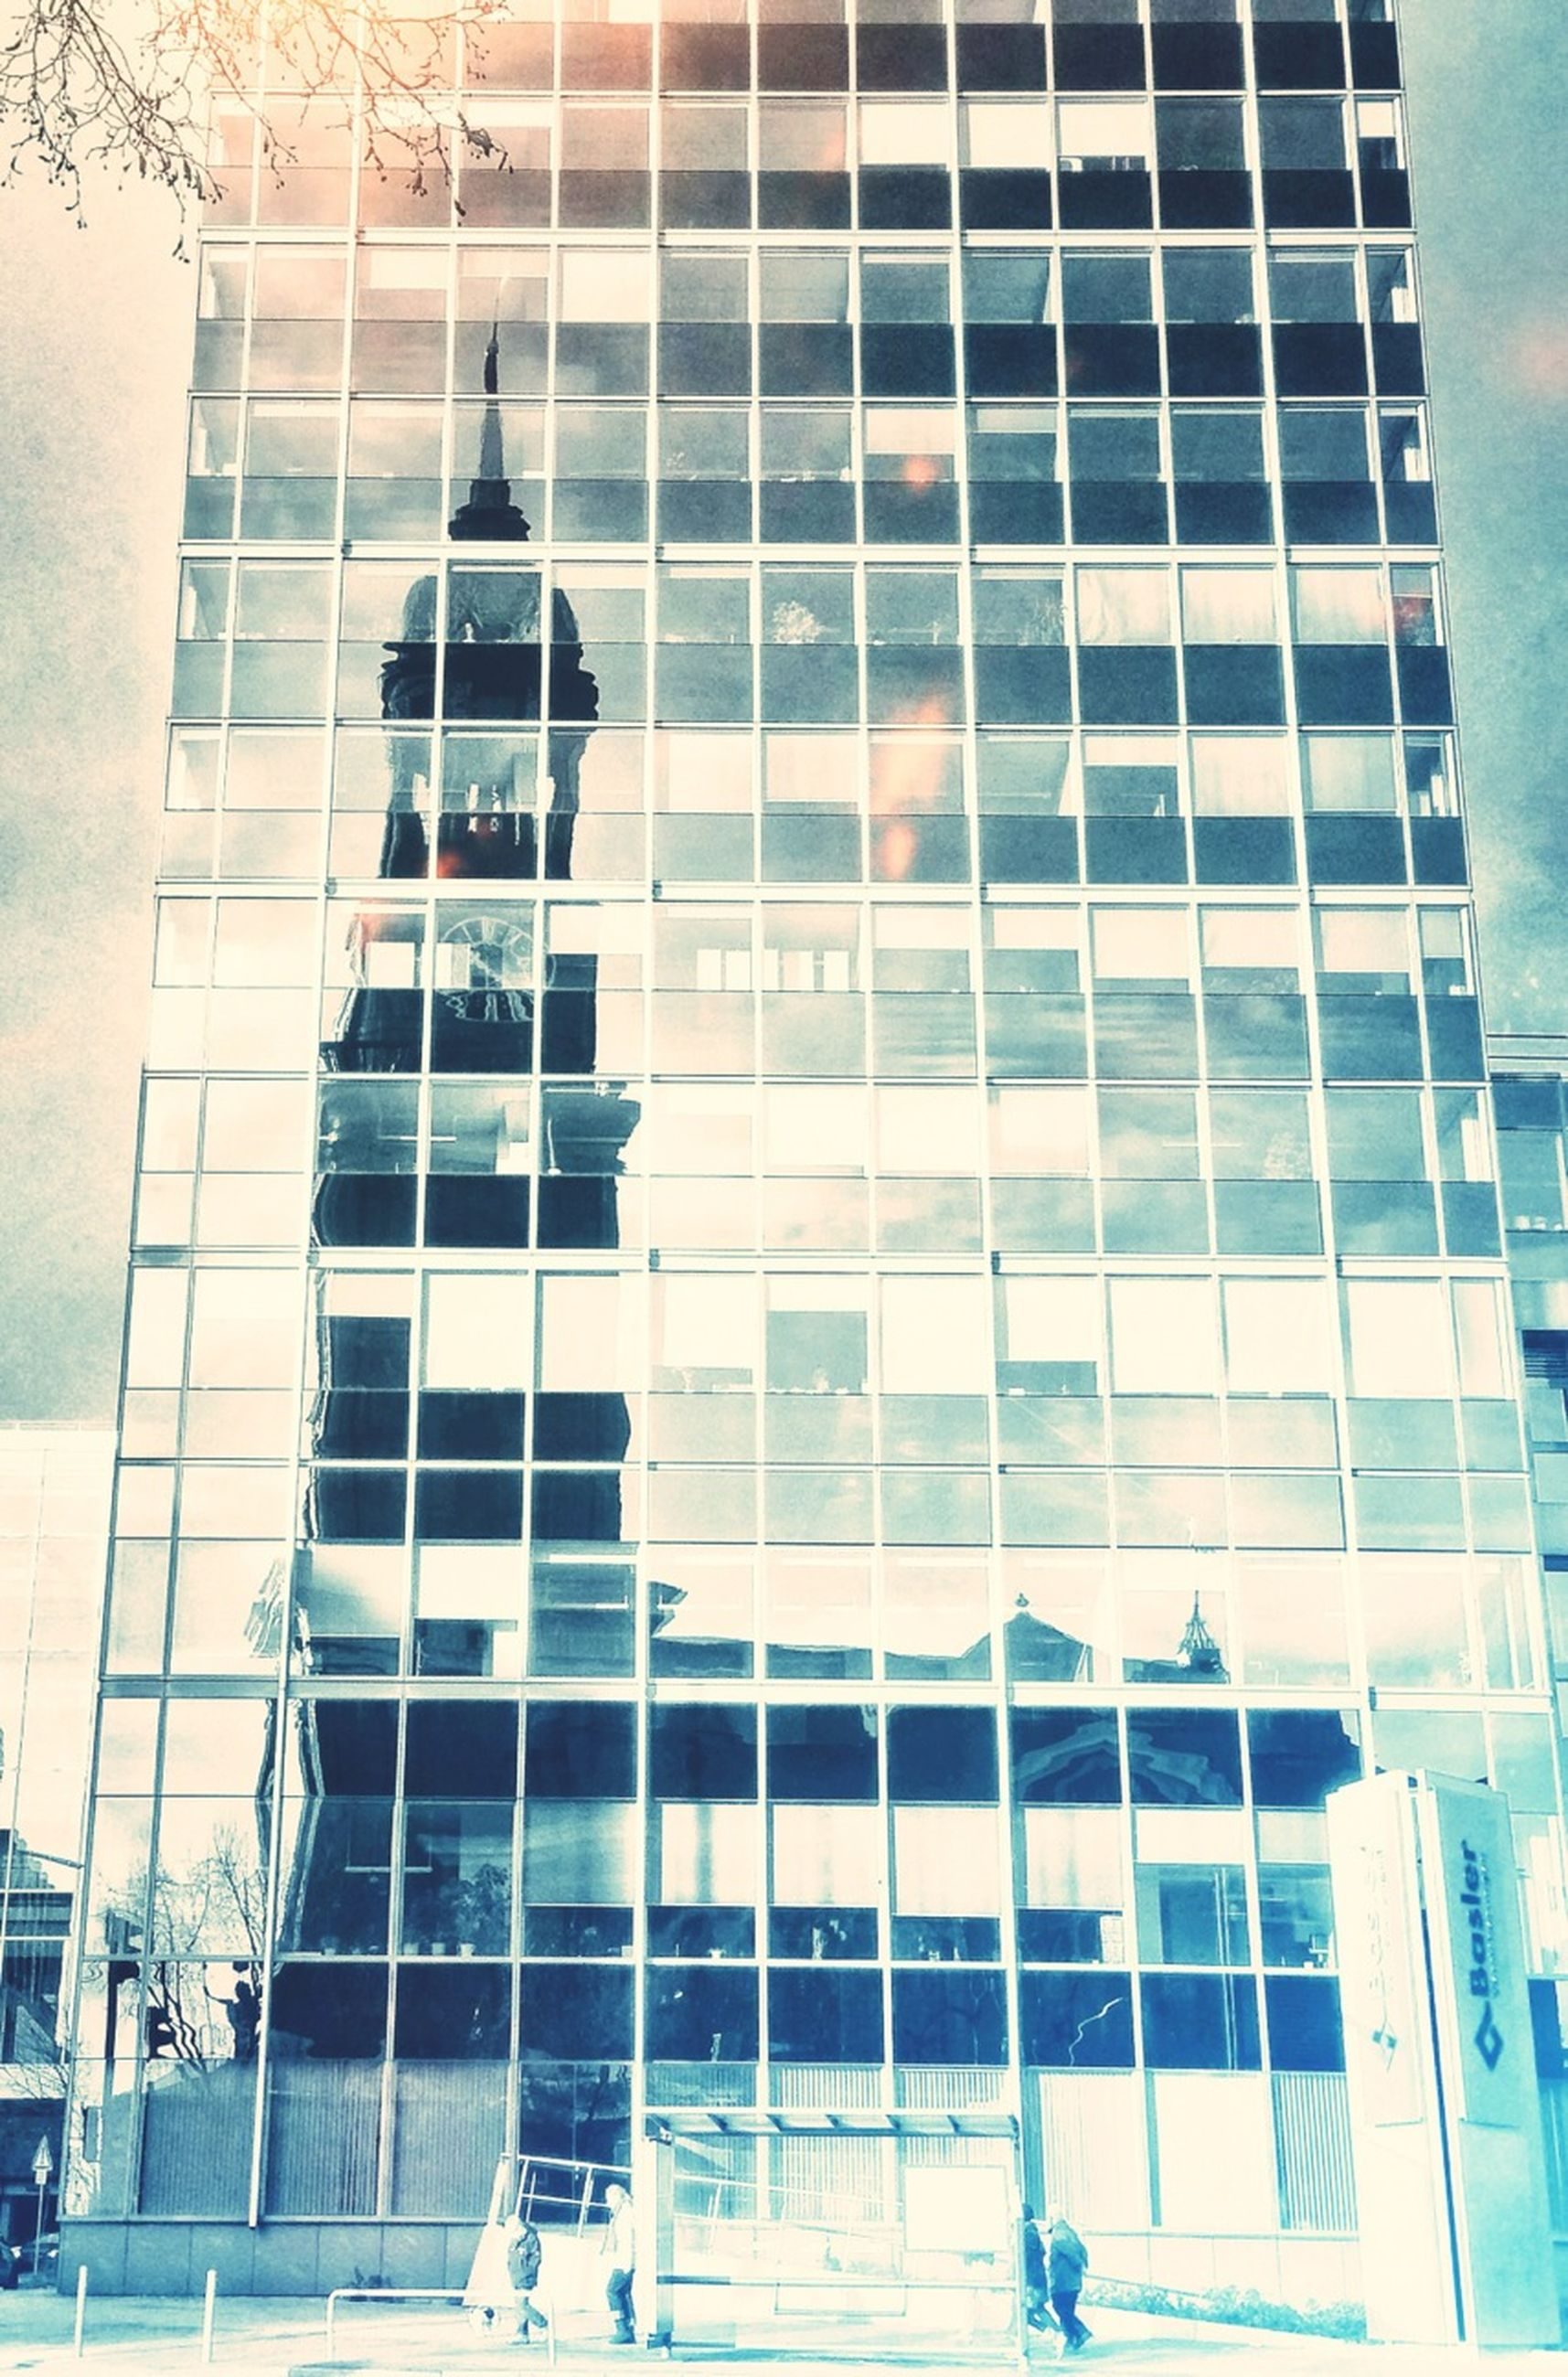 building exterior, architecture, built structure, modern, glass - material, office building, low angle view, reflection, building, window, city, skyscraper, tall - high, pattern, full frame, repetition, day, glass, backgrounds, outdoors